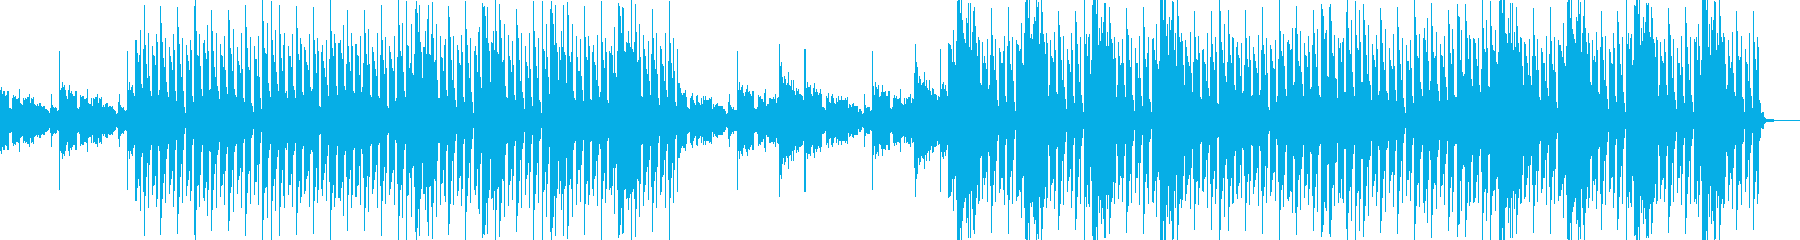 Near-future tension/texture opening's reproduced waveform